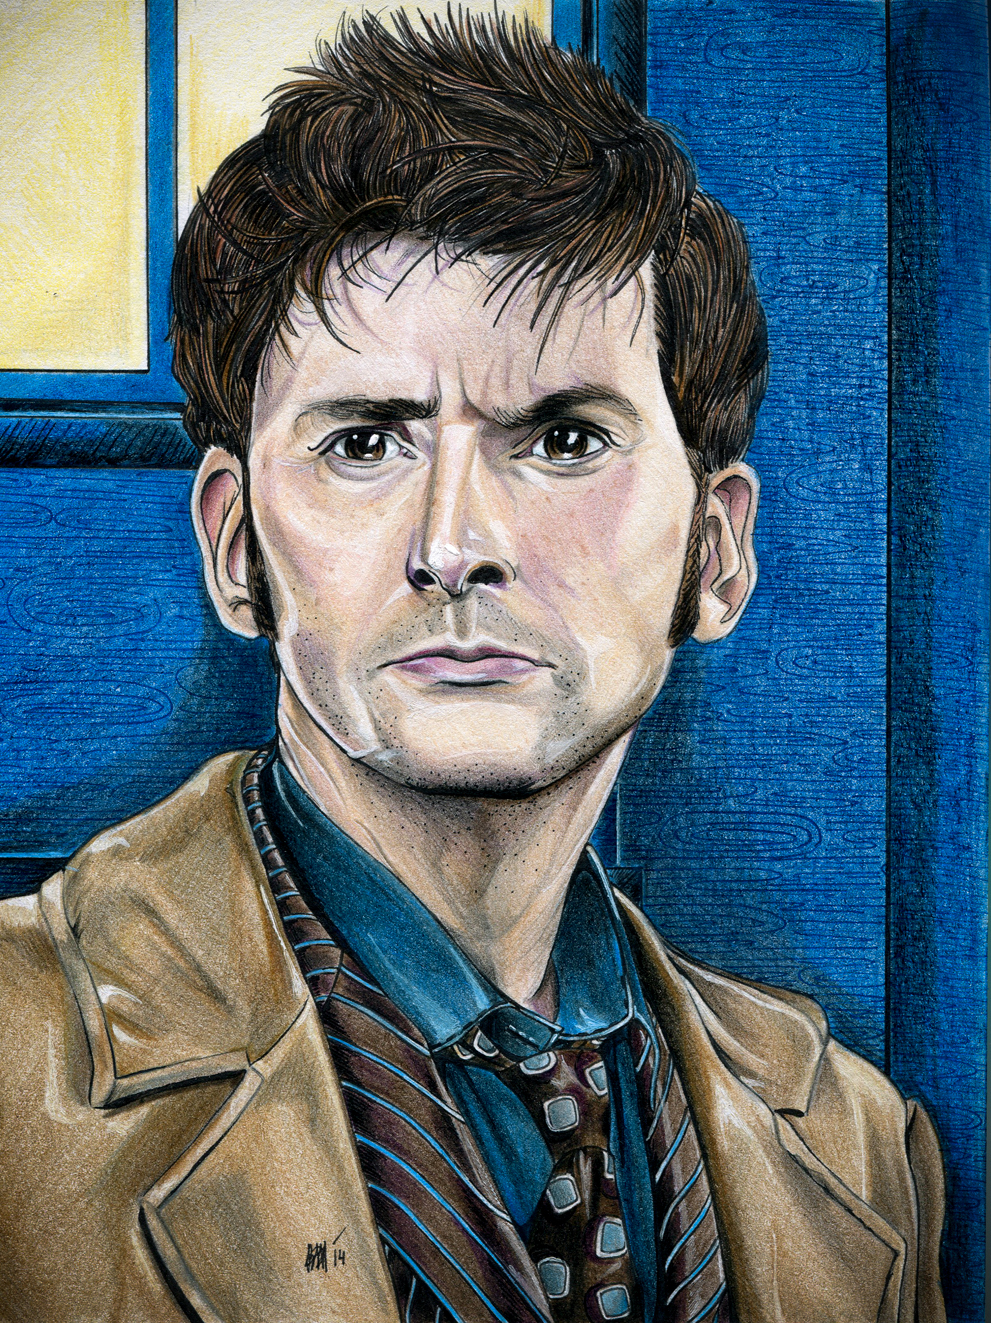 10th Doctor by Karenscarlet